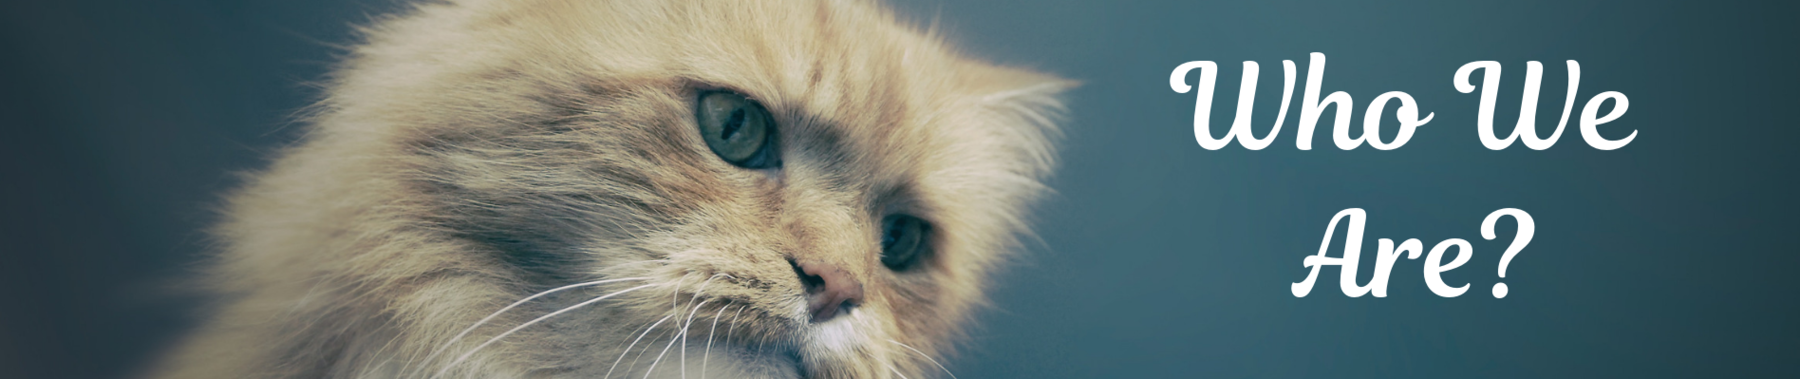 Cats and Dogs Breeds Classification Oxford Dataset | Kaggle